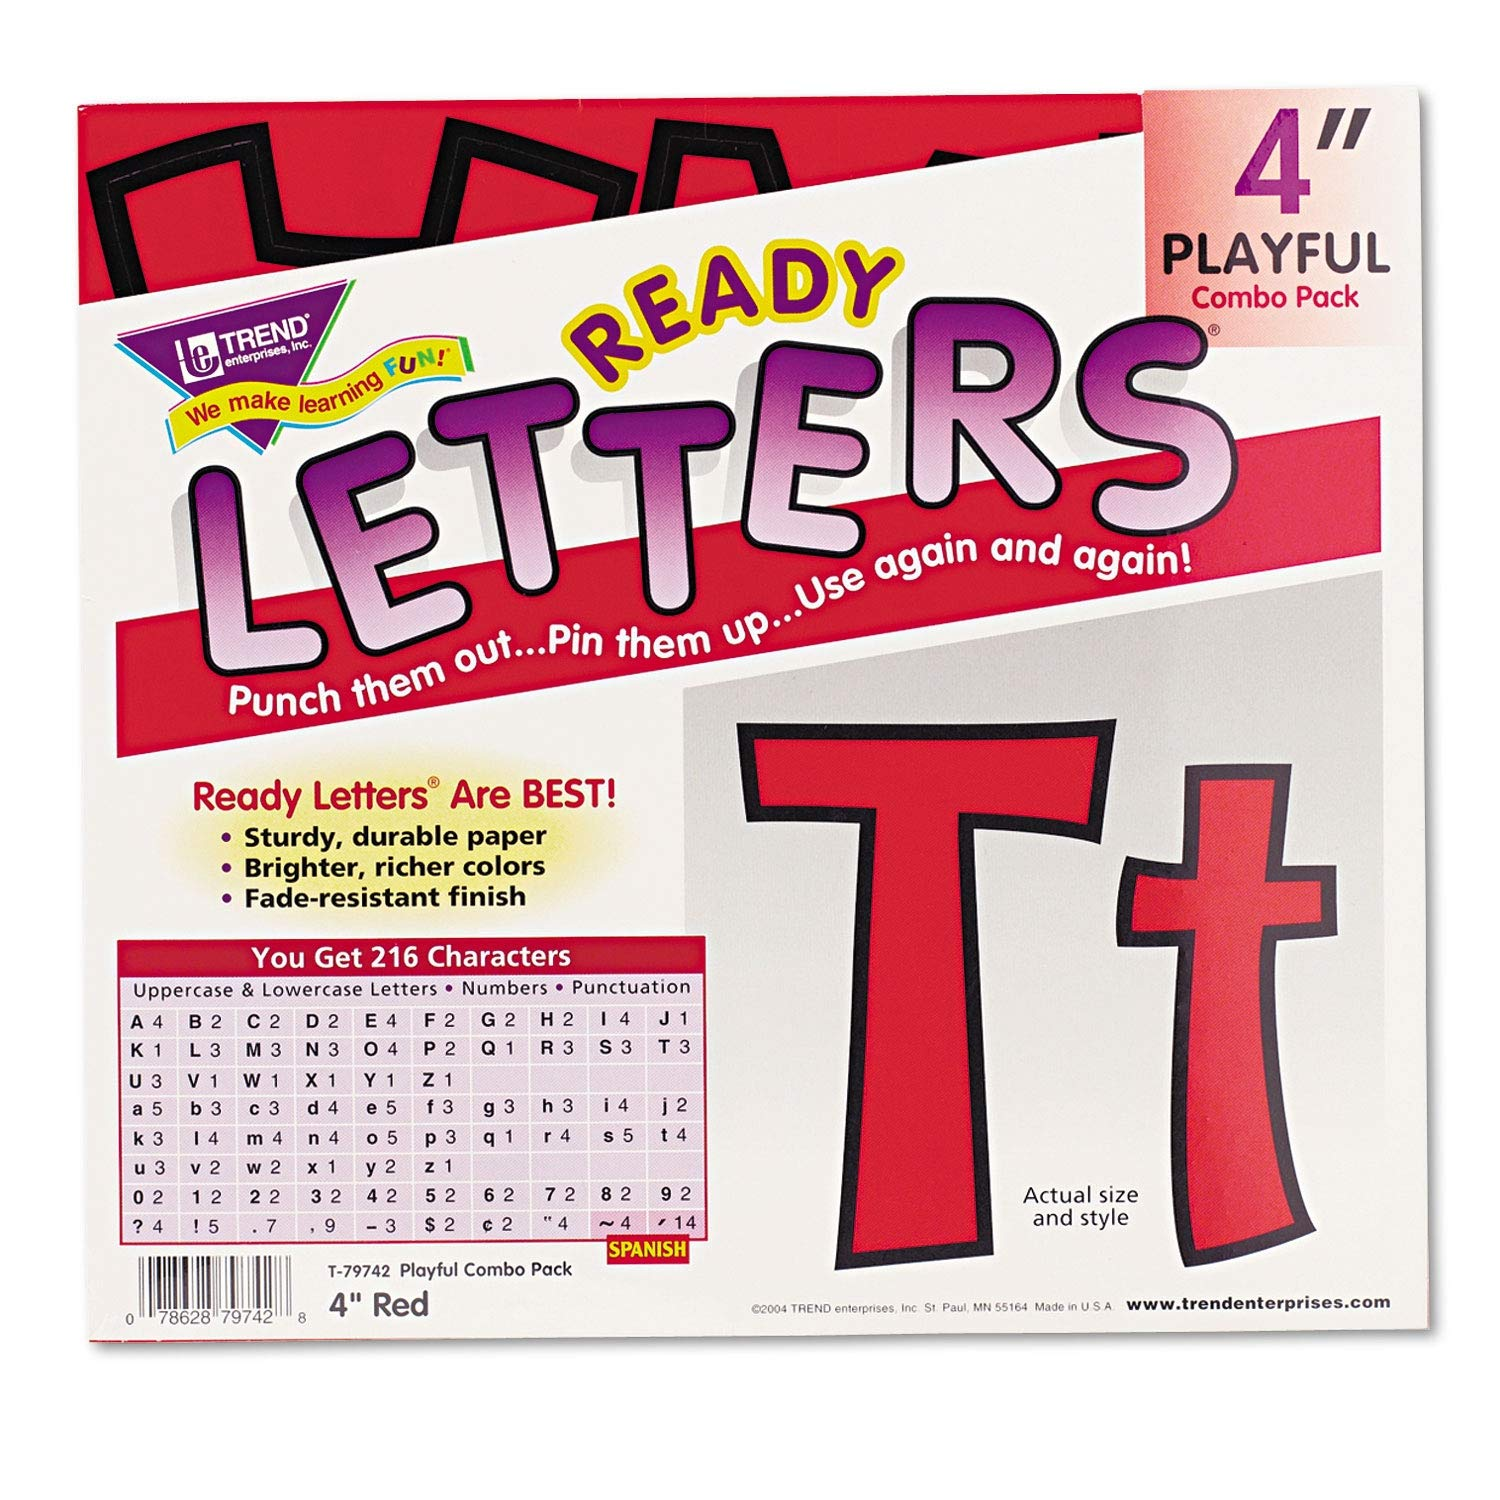 TREND Ready Letters Playful Combo Set, Red, 4h, 216/Set - T79742 Pack of 2